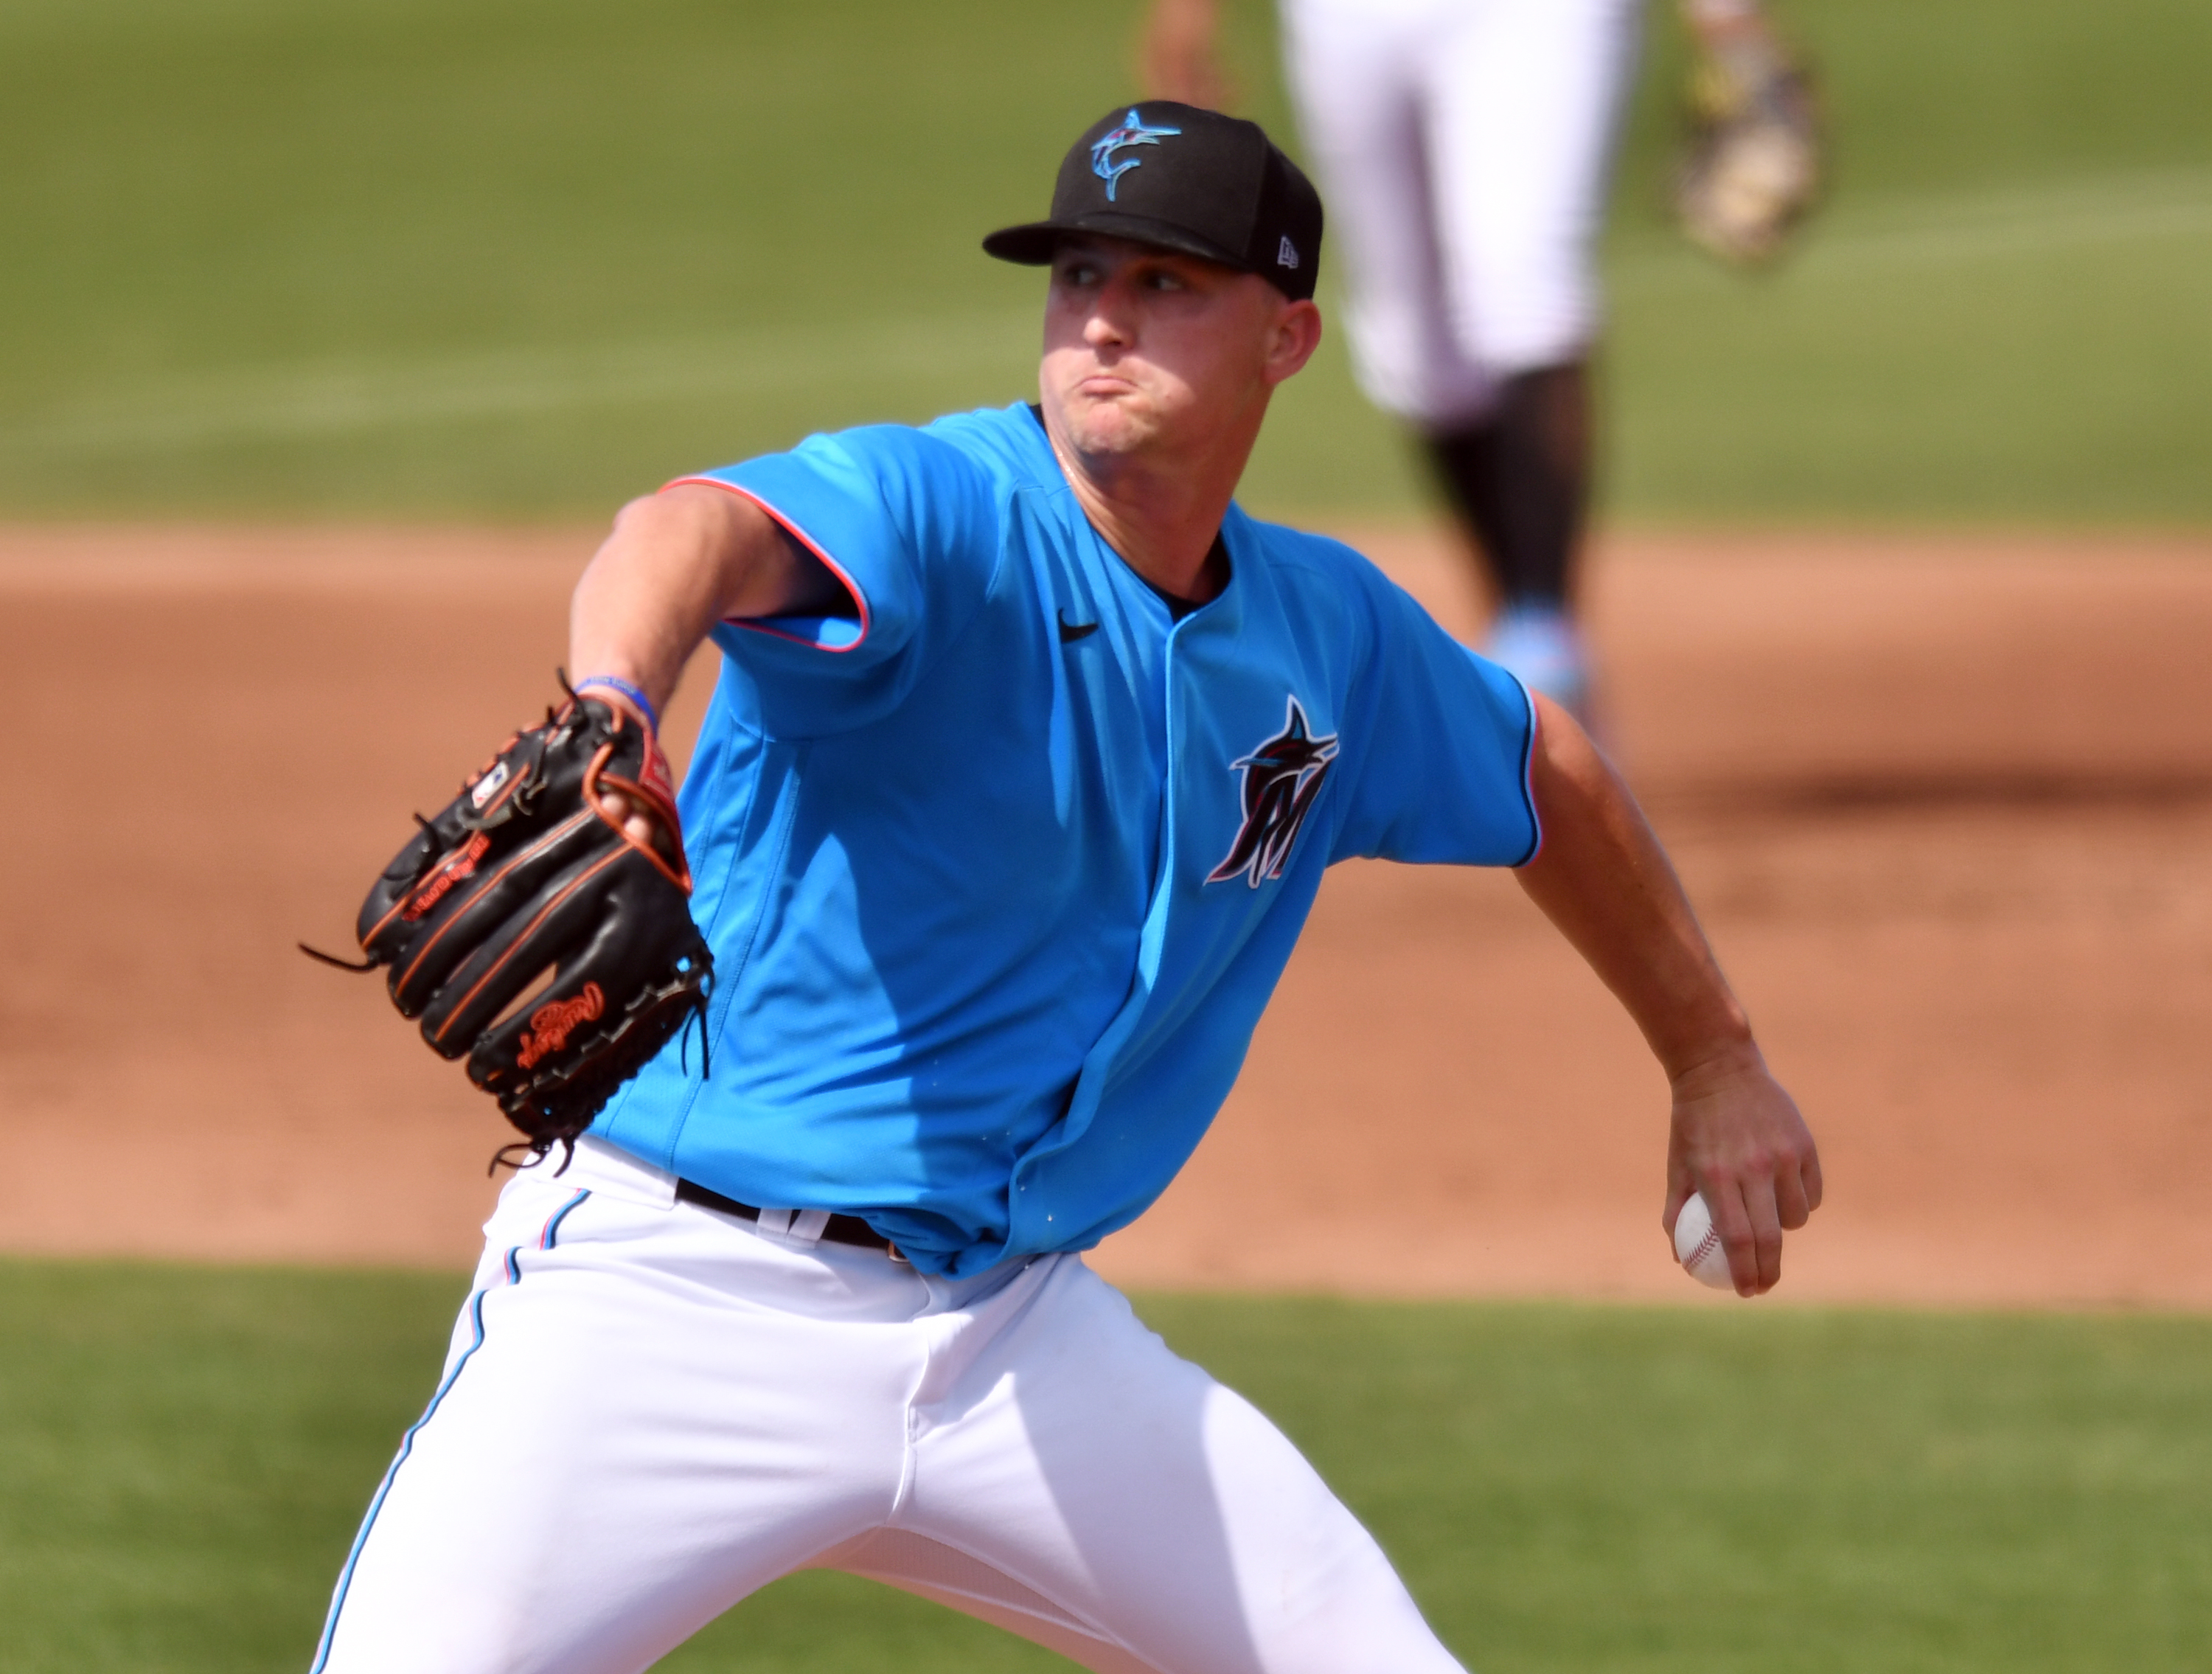 Miami Marlins starting pitcher Braxton Garrett (60) pitches against the St. Louis Cardinals during a spring training game at Roger Dean Chevrolet Stadium.